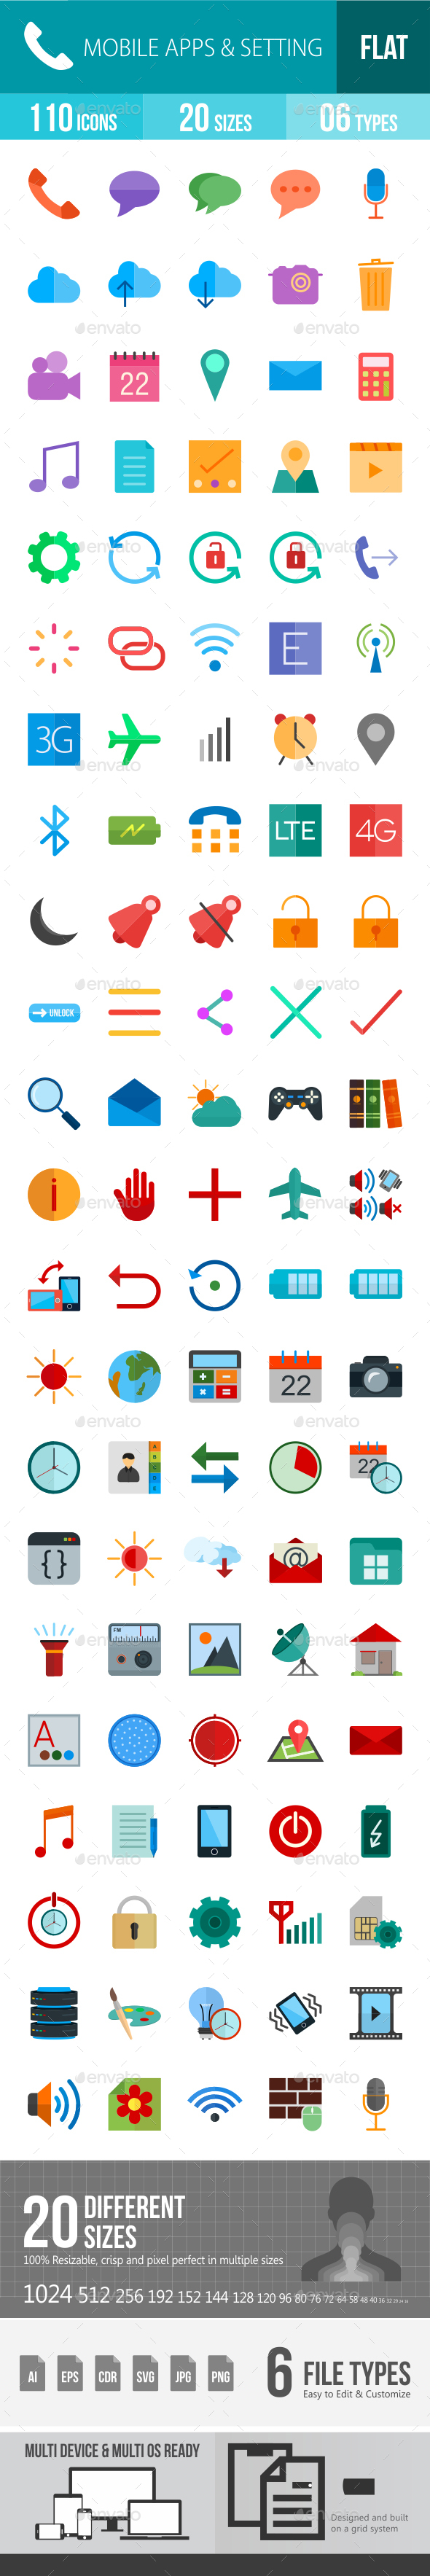 Mobile Apps & Settings Flat Multicolor Icons - Icons